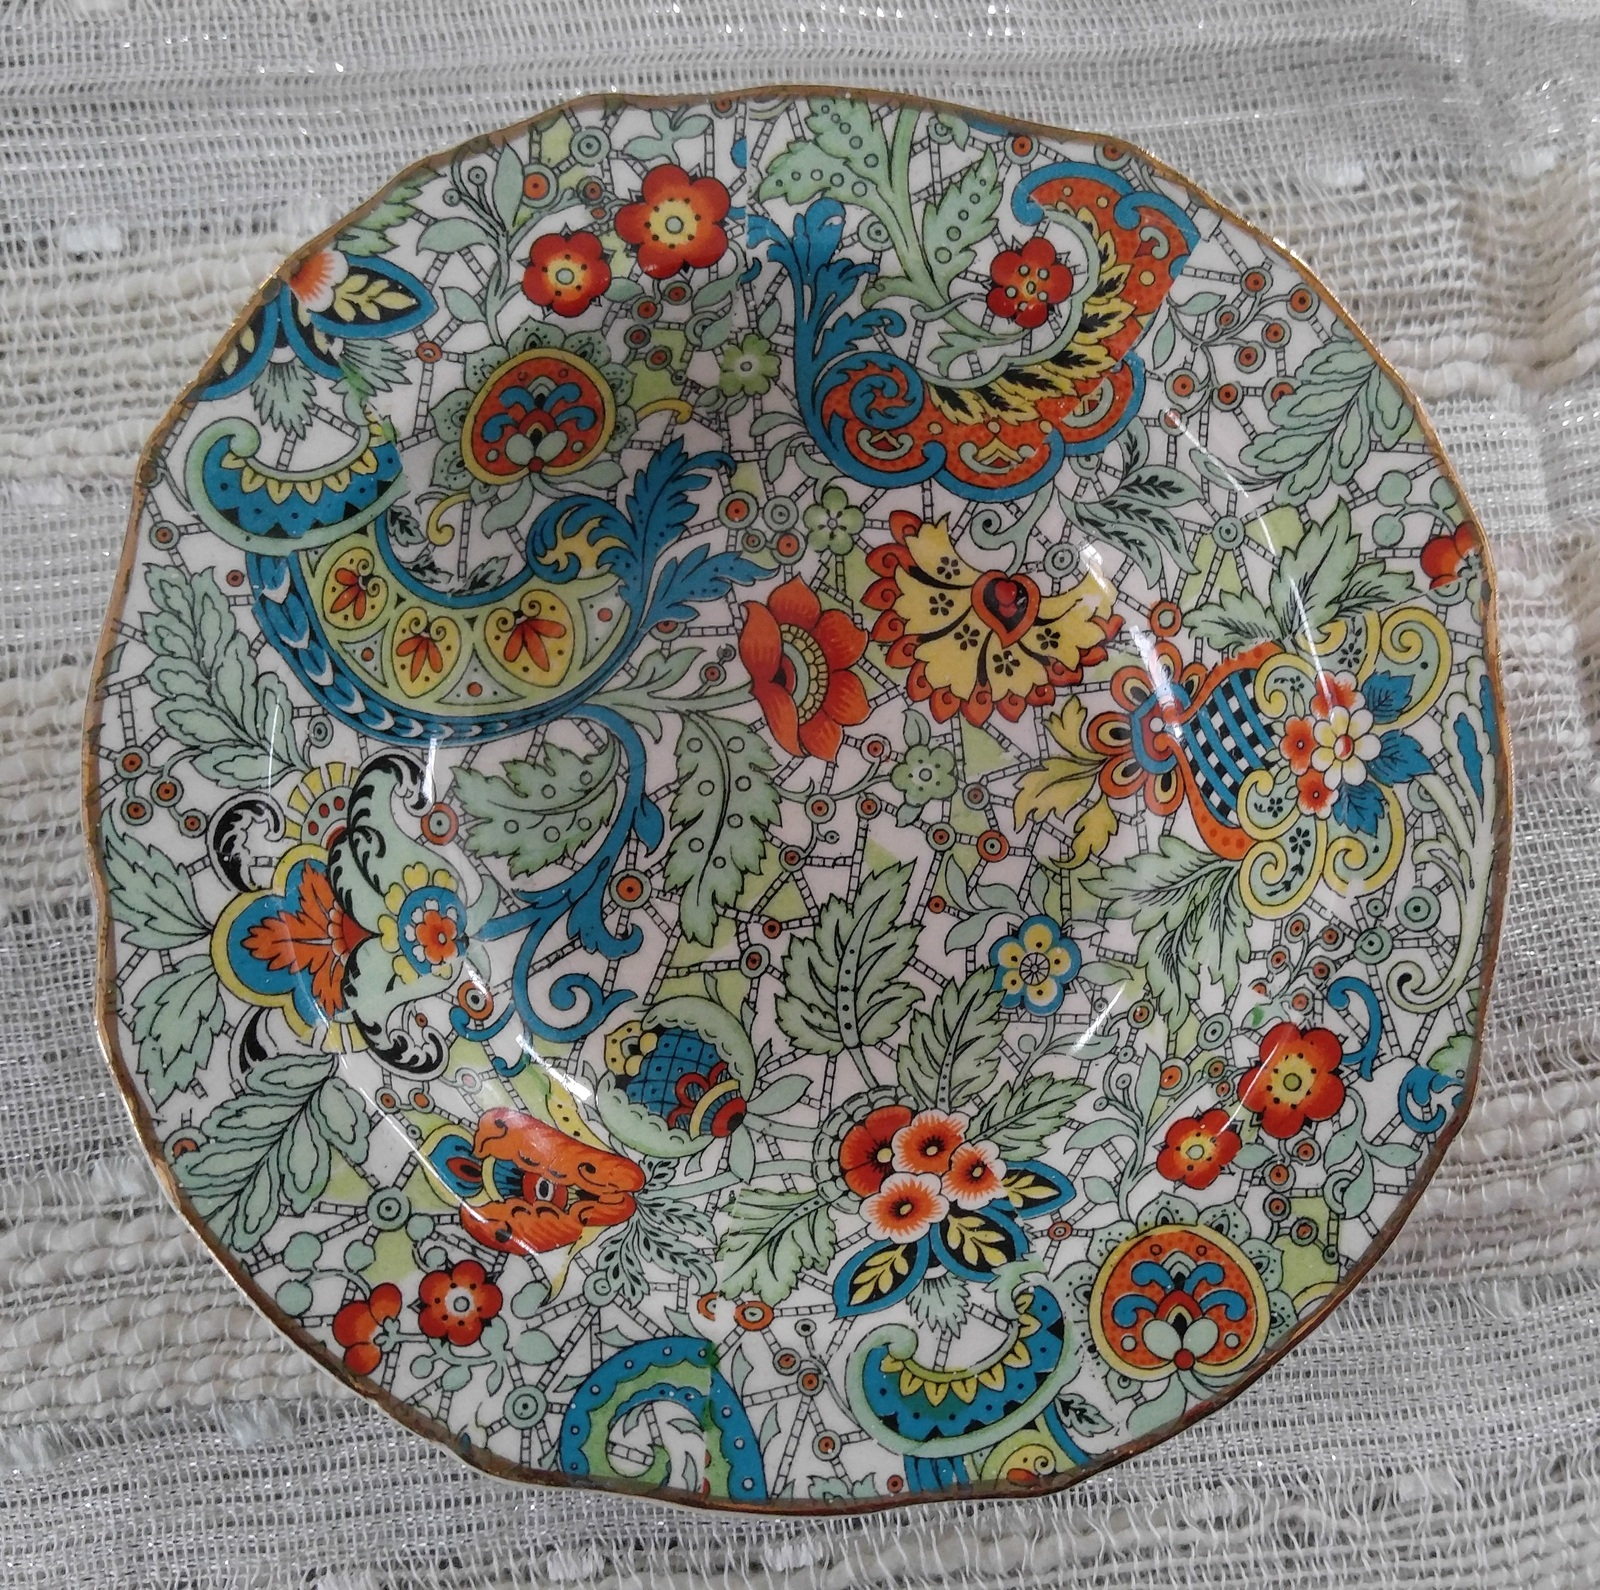 Alfred meakin Dish: 1 listing